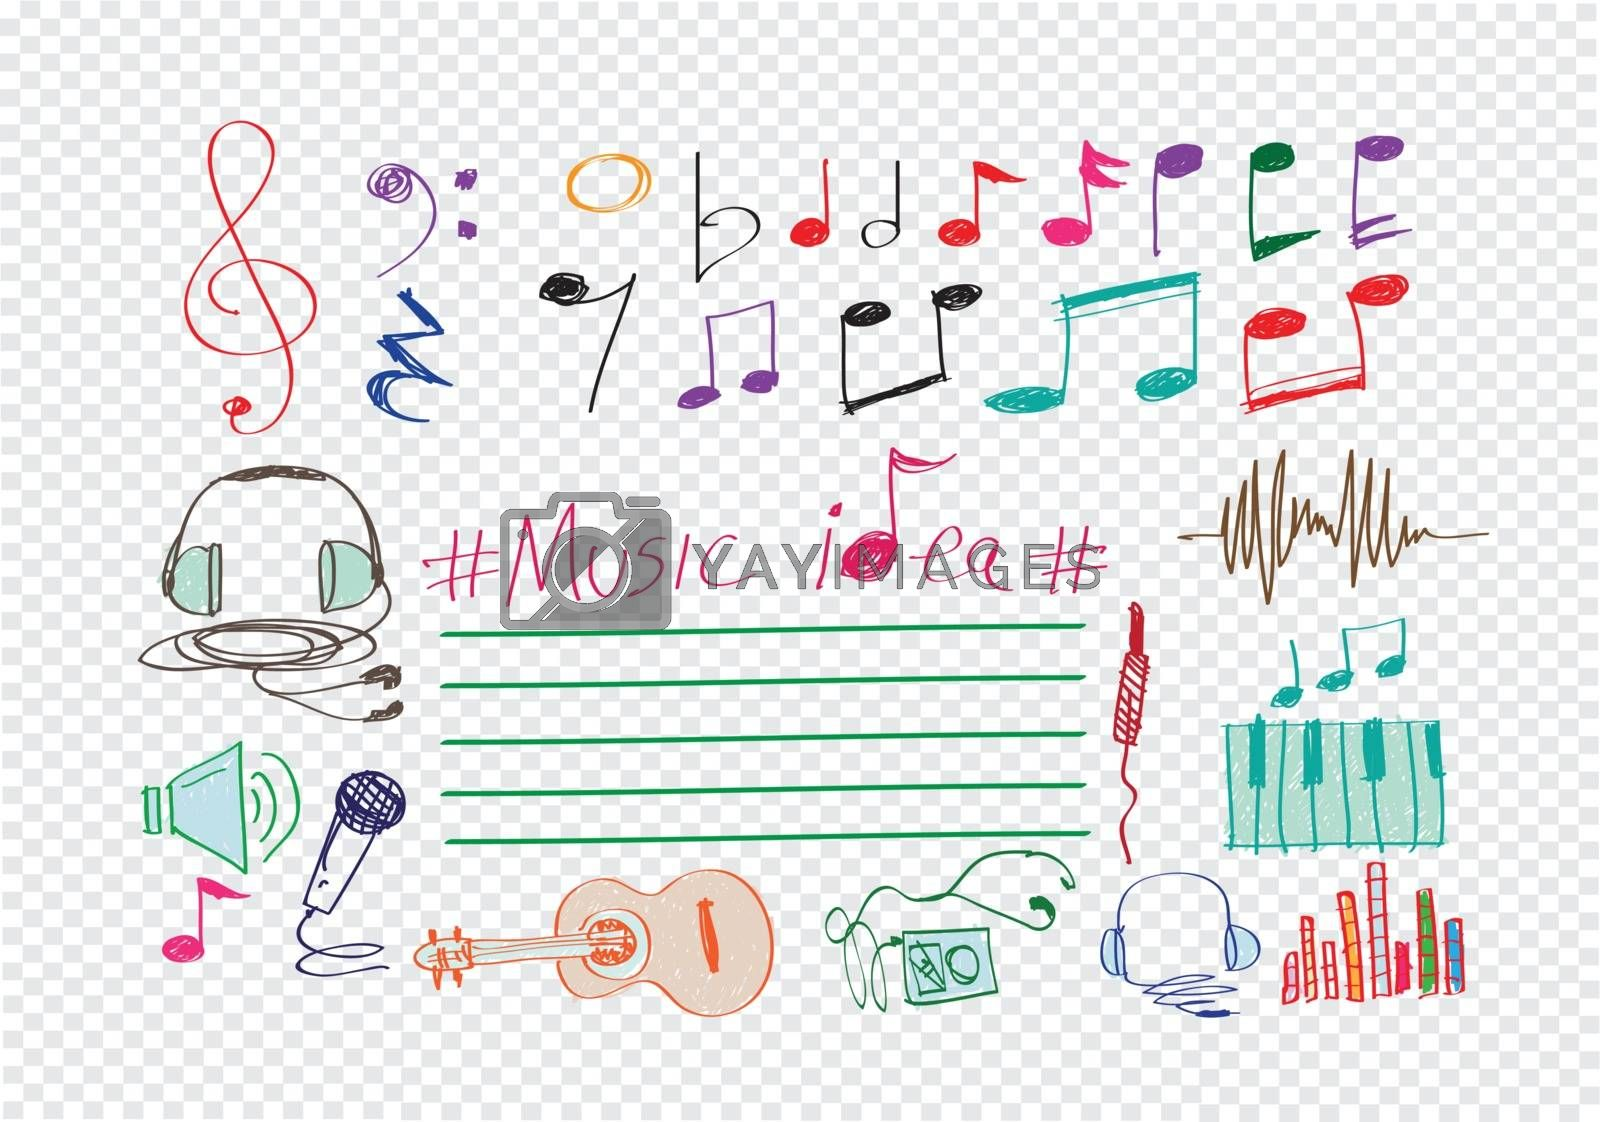 Music Notes and Music icons by kiddaikiddee